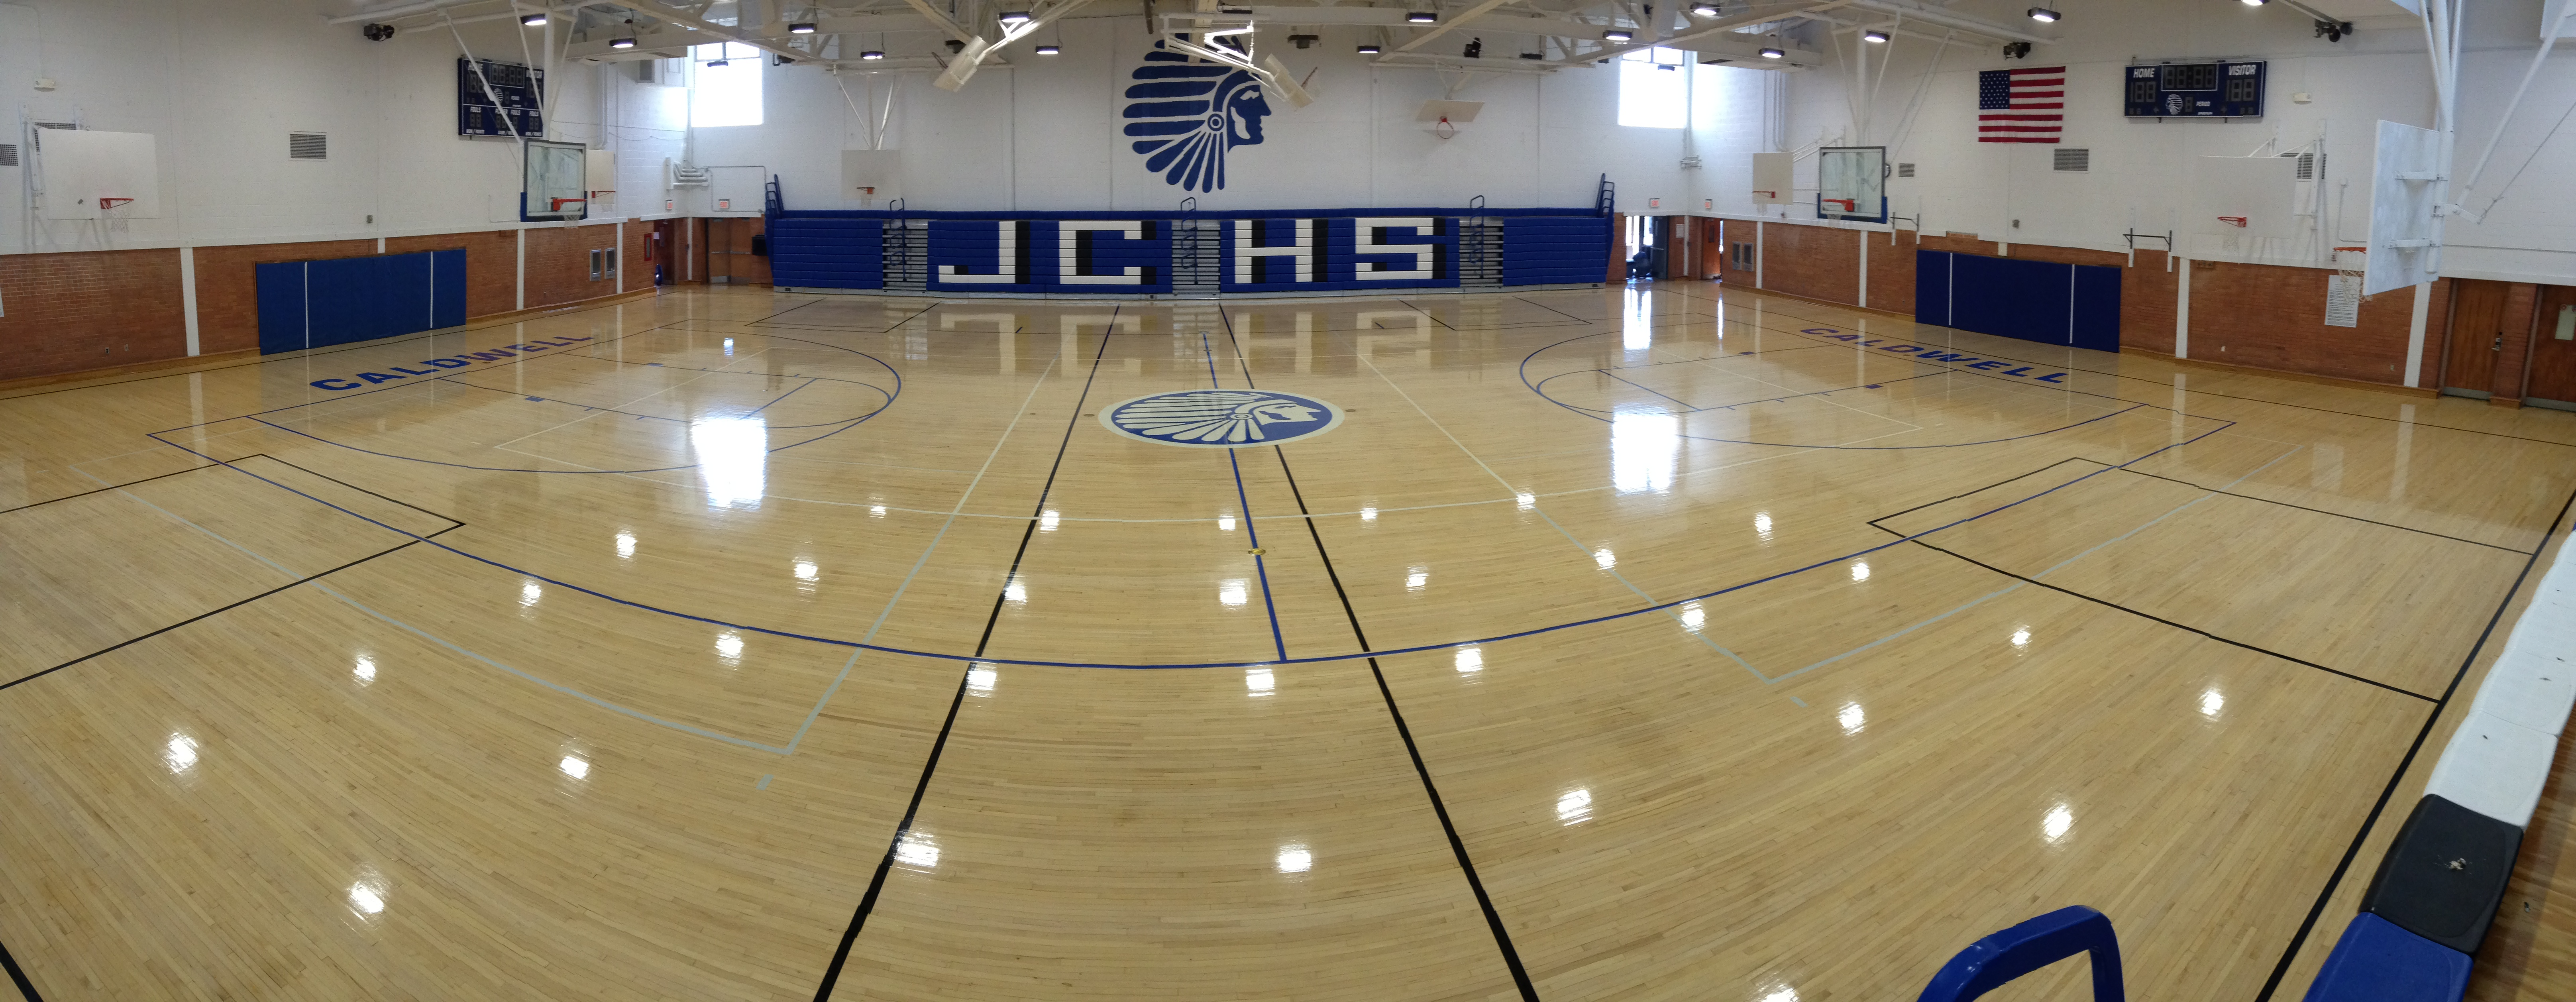 James Caldwell High School   After. Another Obvious Issue With Gym Floors  ...